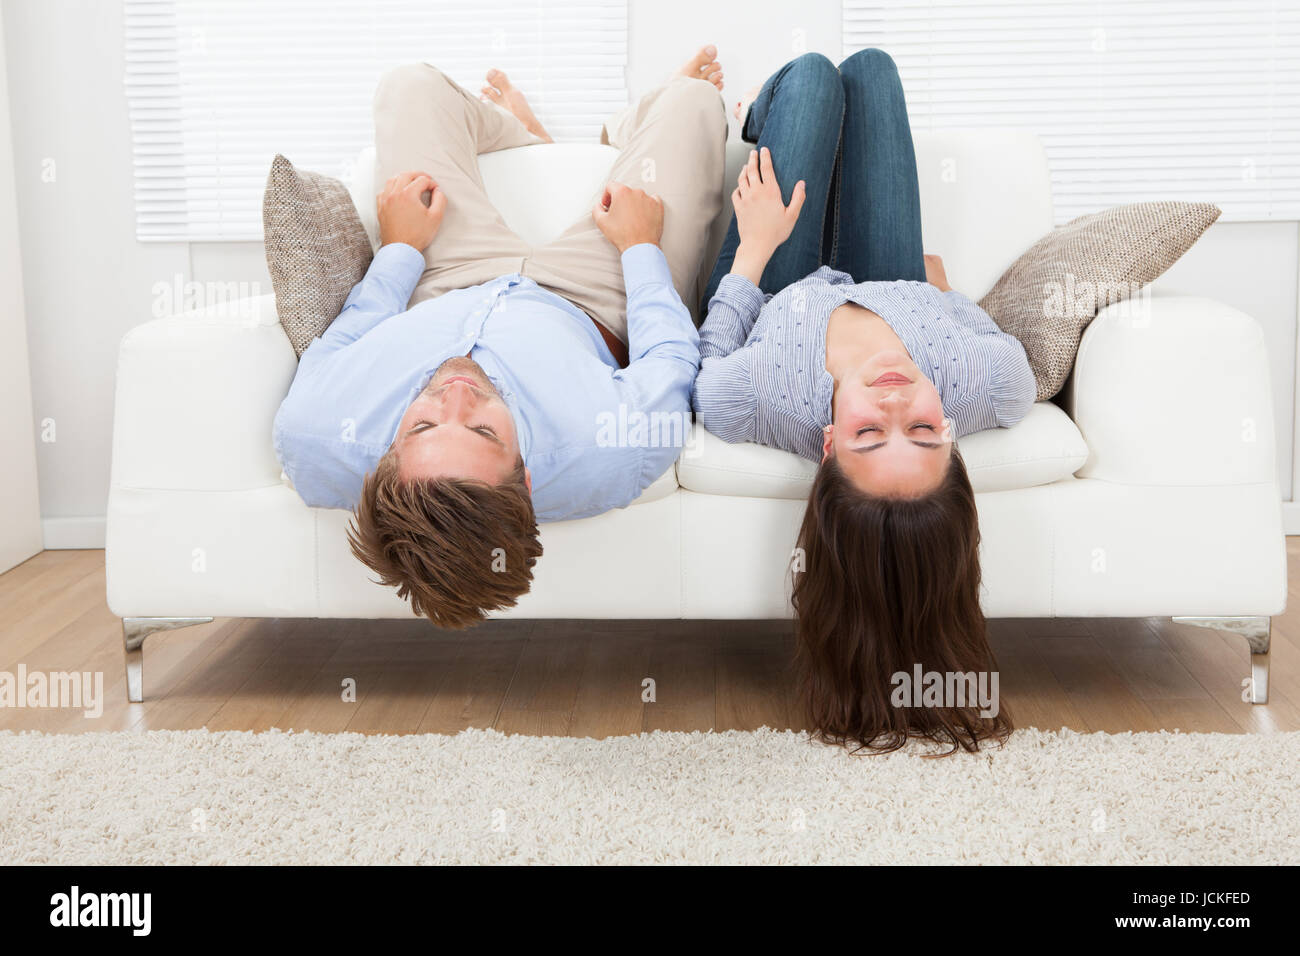 young woman sofa lying feet stockfotos young woman sofa lying feet bilder seite 3 alamy. Black Bedroom Furniture Sets. Home Design Ideas